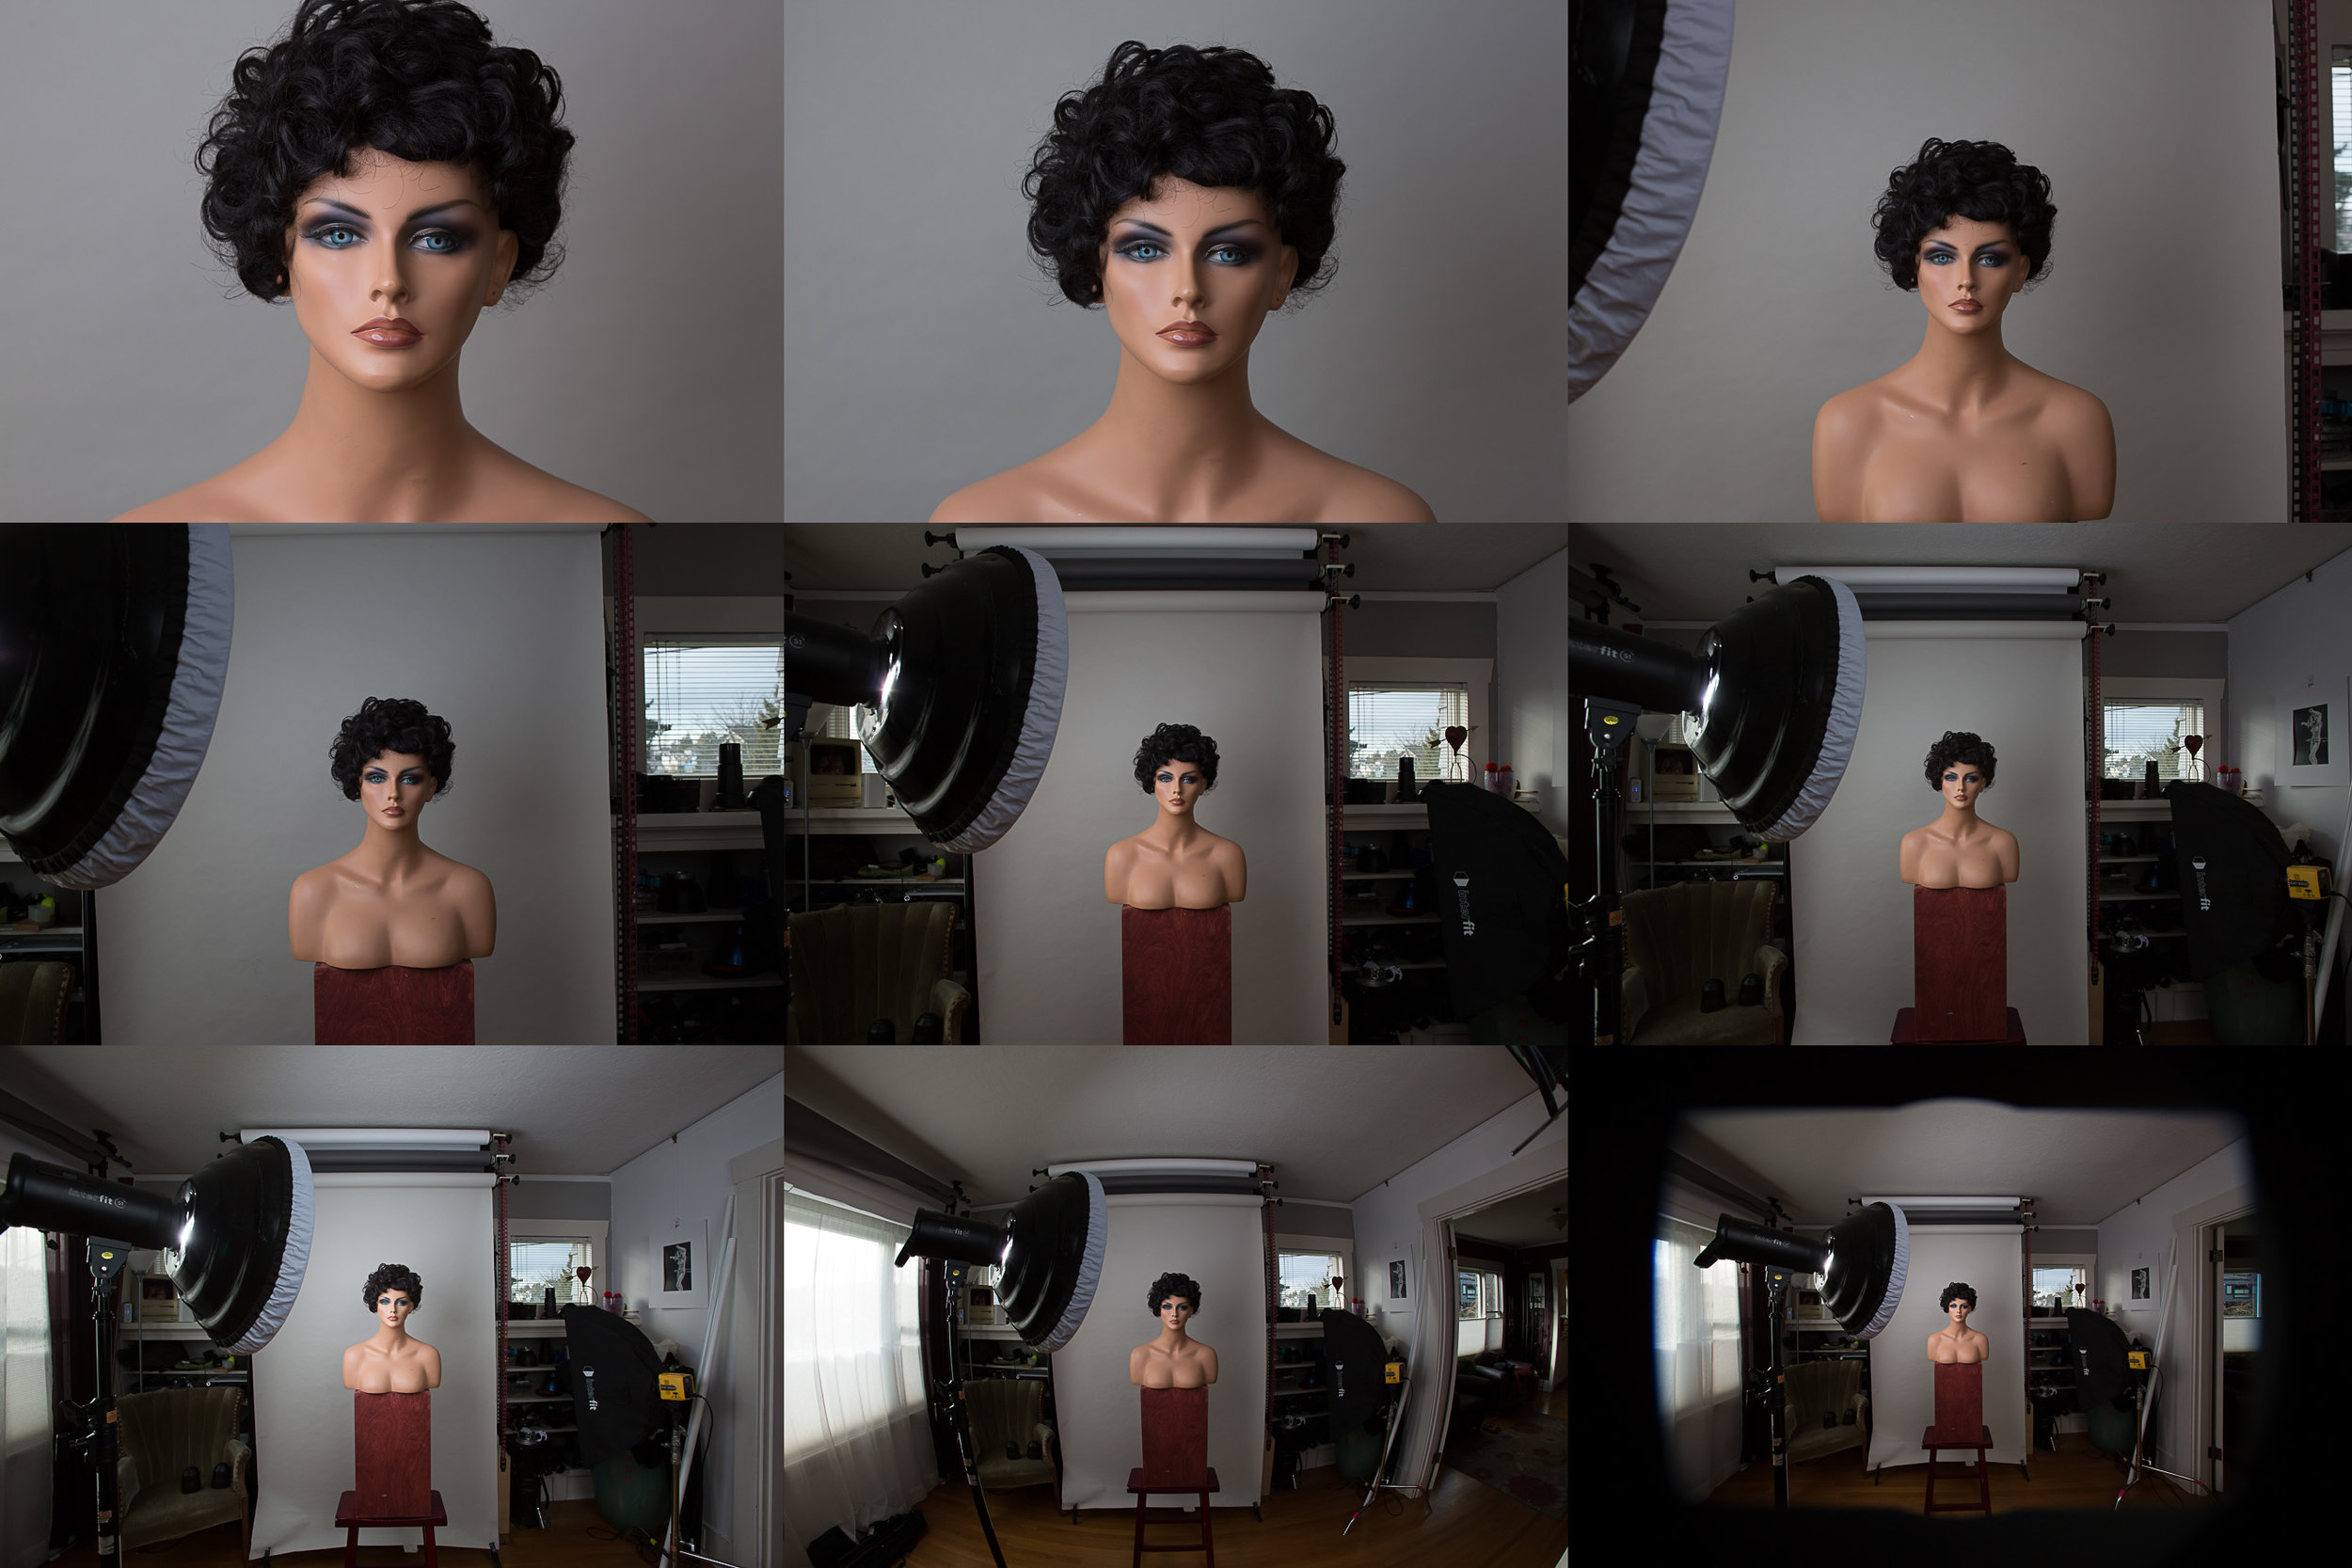 100mm, 85mm, 50mm, 35mm, 24mm, 20mm, 15mm, and 10mm from the same camera position 58 inches from the subject